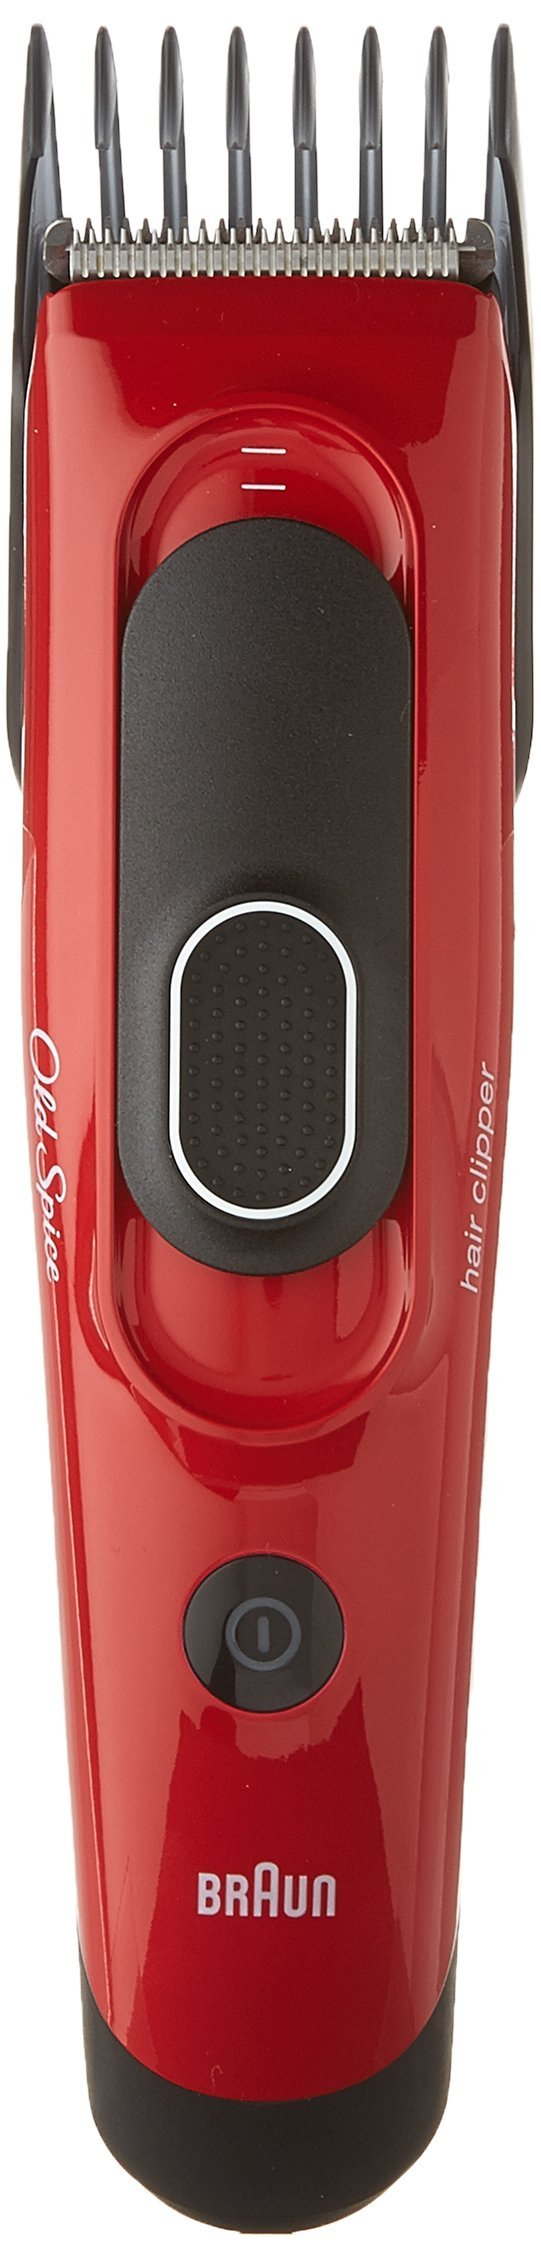 Old Spice Hair Clippers, powered by Braun, Washable with 8-Setting Adjustable Comb for Precision Trimming